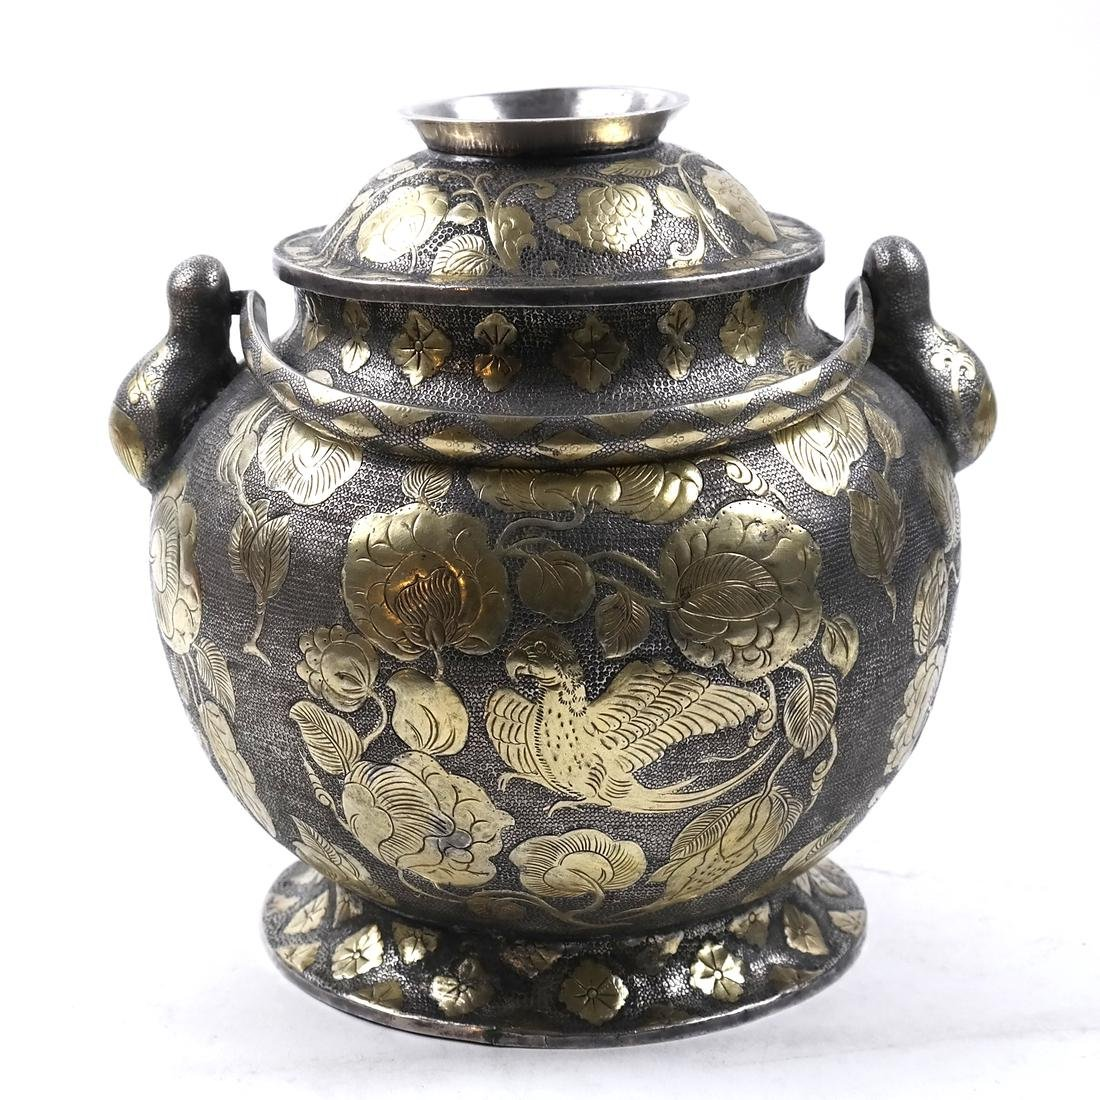 AN ASIAN LARGE PARCEL-GILT SILVER GLOBULAR VESSEL AND